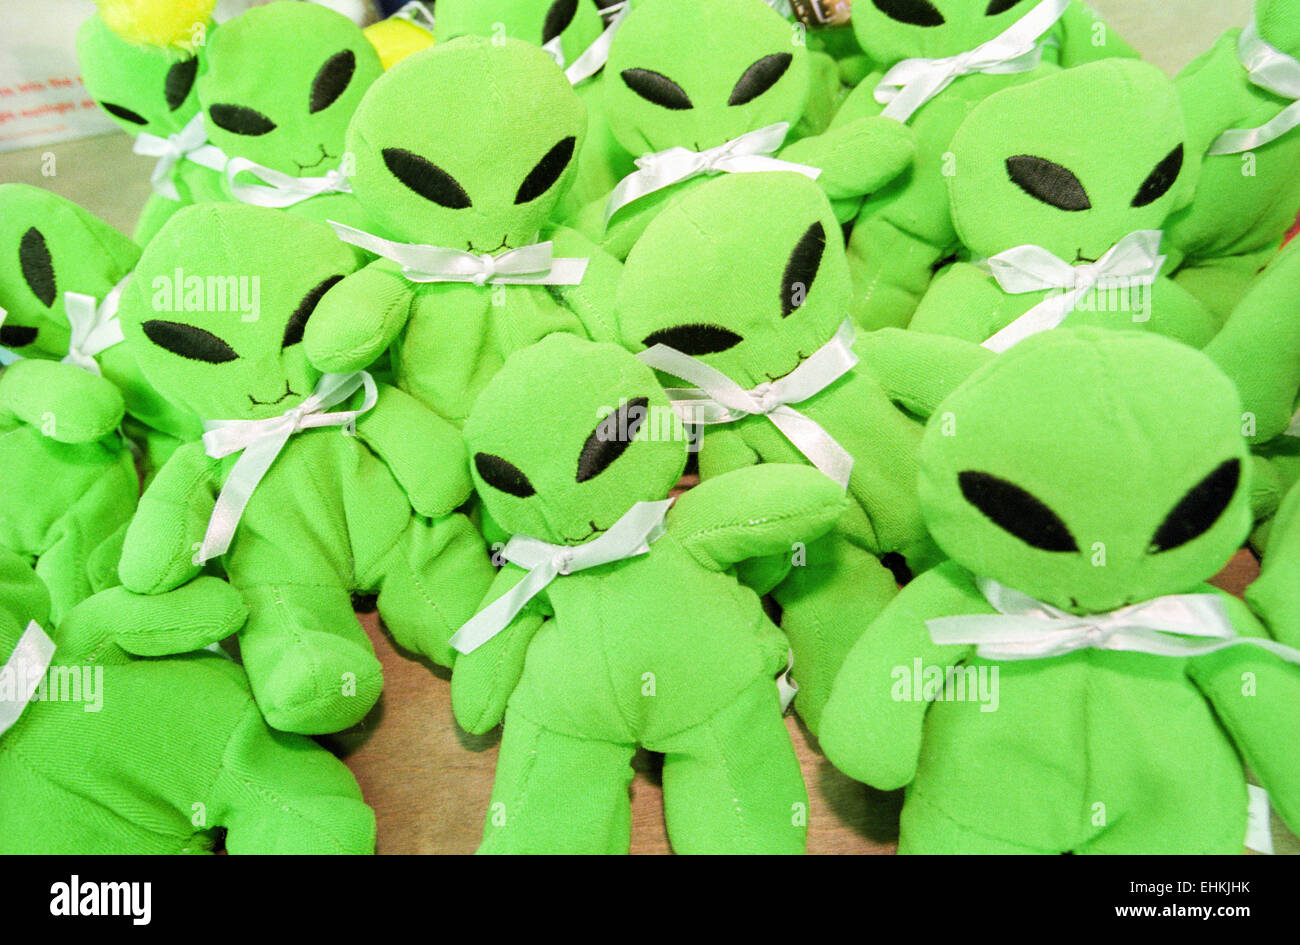 LAS VEGAS, NV – MARCH 15: Alien merchandise at X-Files convention in Las Vegas, Nevada on March 15, 1998. Stock Photo